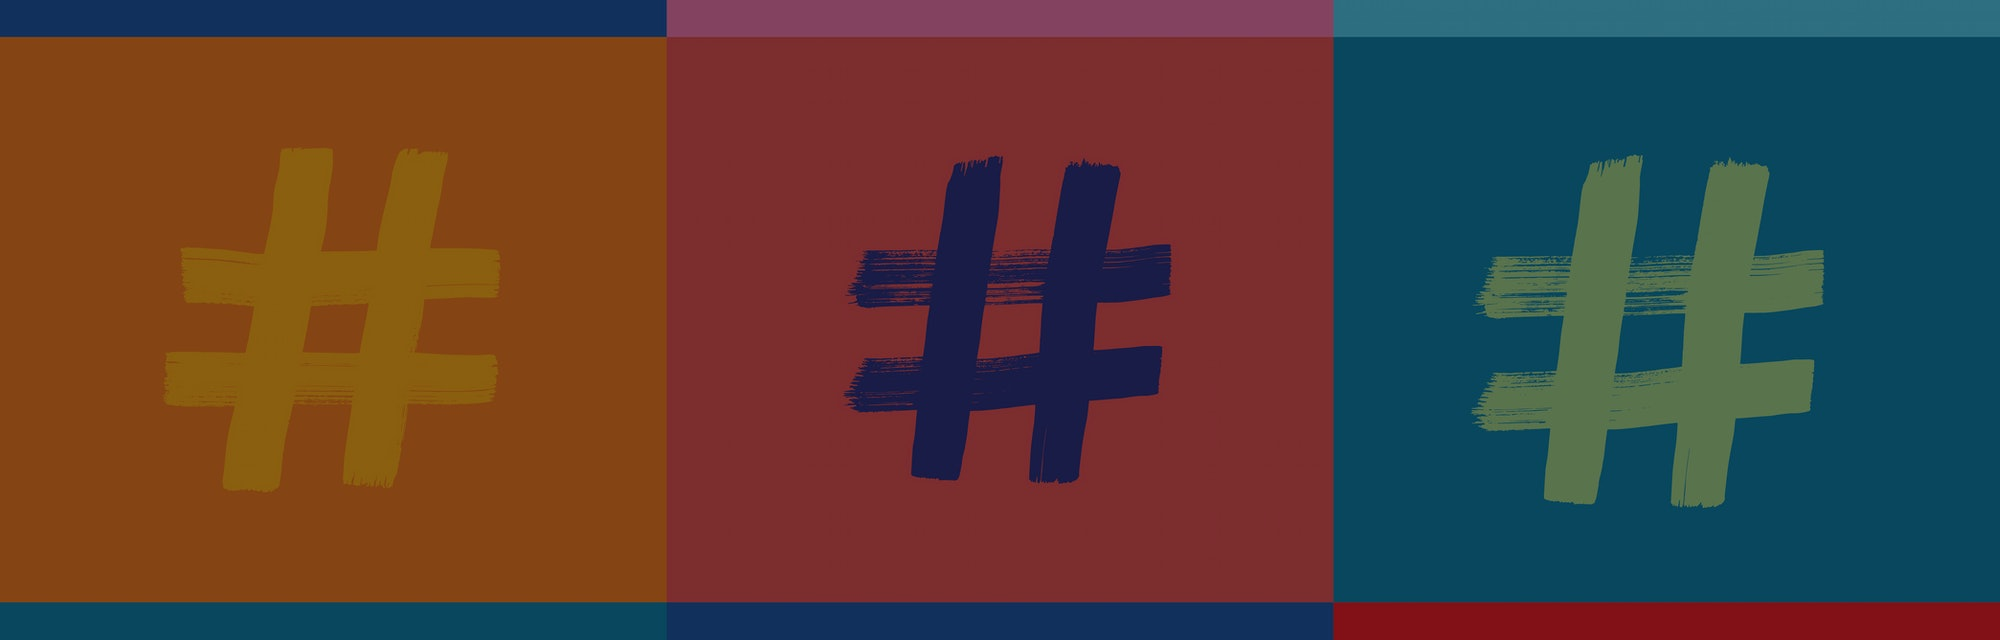 Hashtag Symbol Pattern, Hashtags, Hash tag, Colorful Background, Illustration, Grunge Texture, Internet concepts, instagram, twitter, social media, Online Identity, digital marketing, creativity, Apps